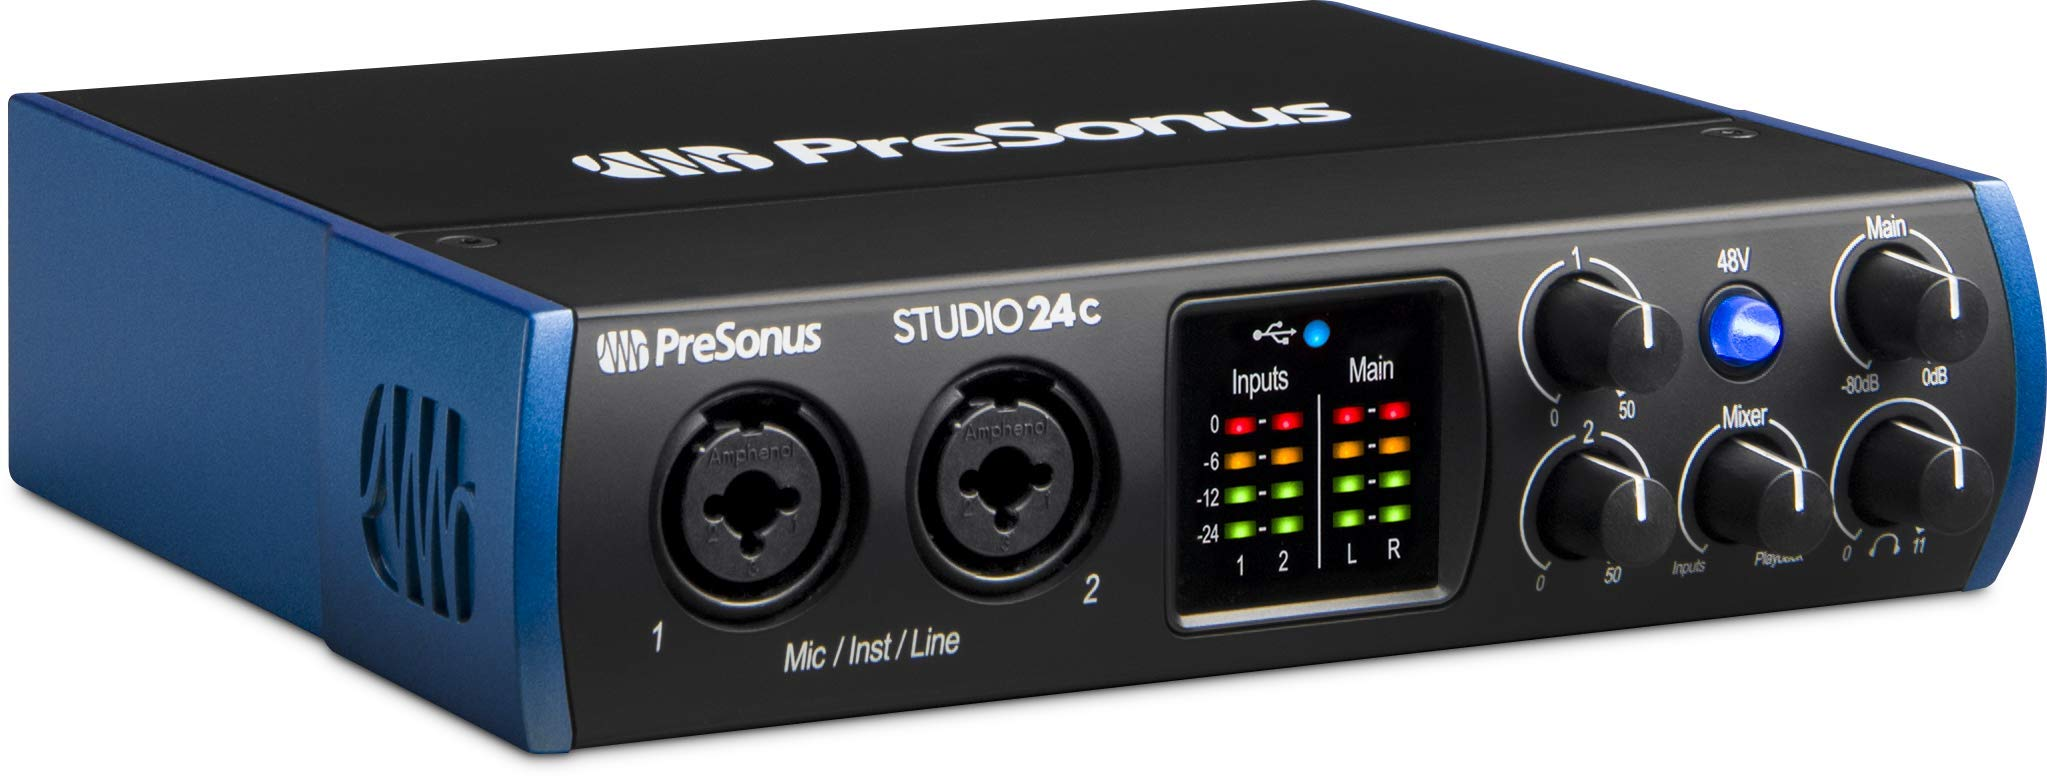 PreSonus Studio 24c 2x2, 192 kHz, USB-C Audio Interface, 2 Mic Pres-2 Line Outs